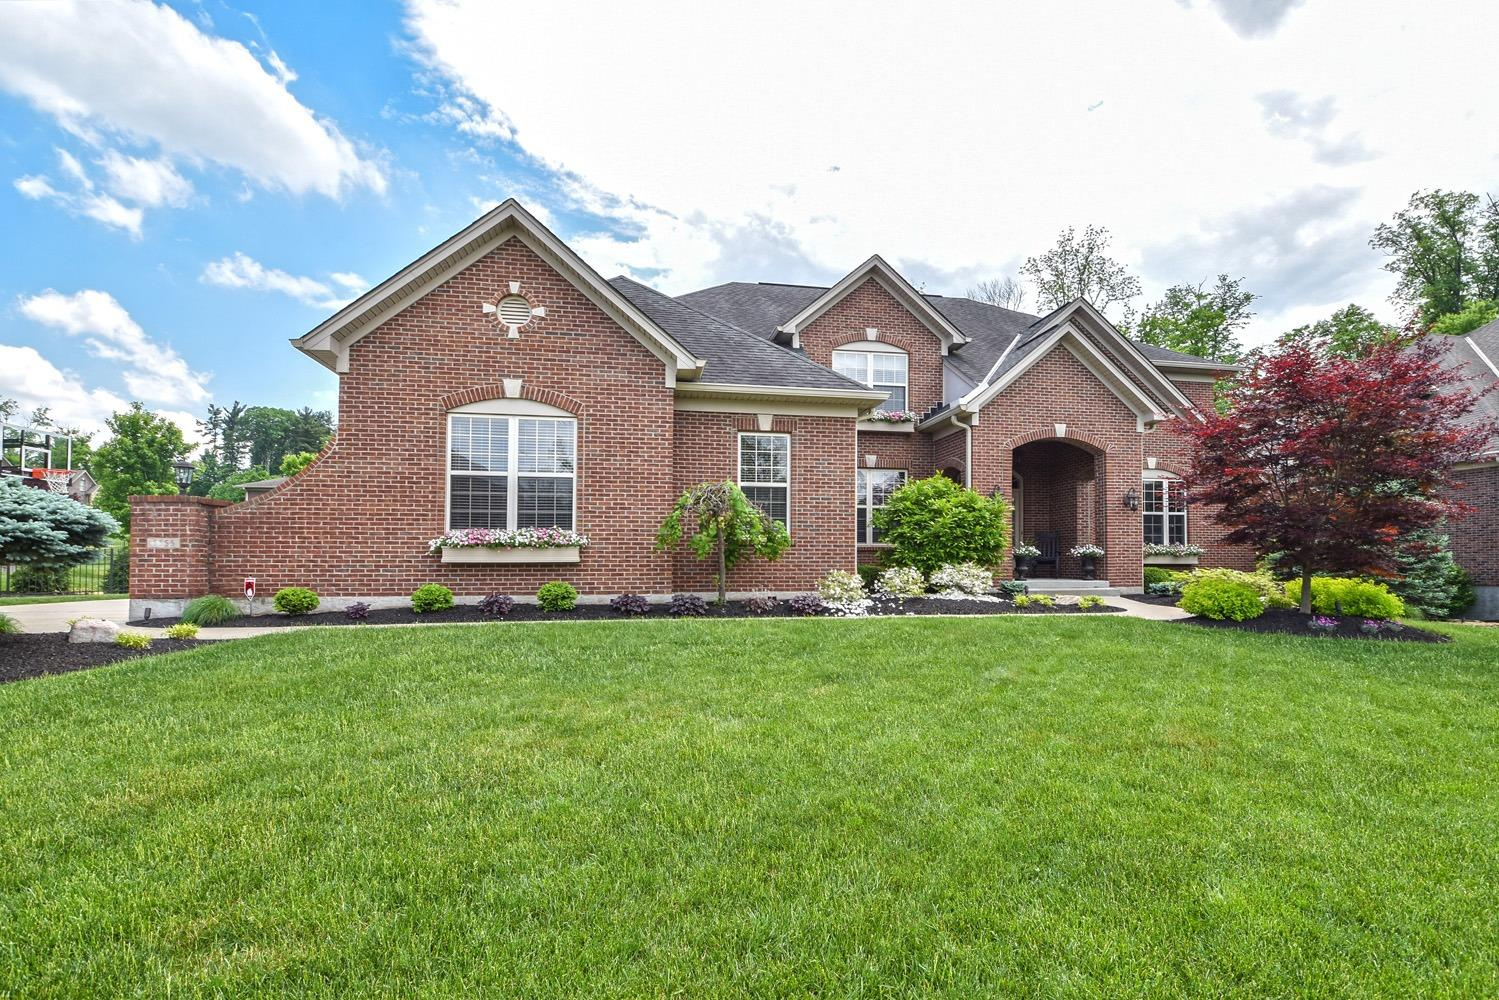 5555 Pine Brook Cir Monfort Hts., OH